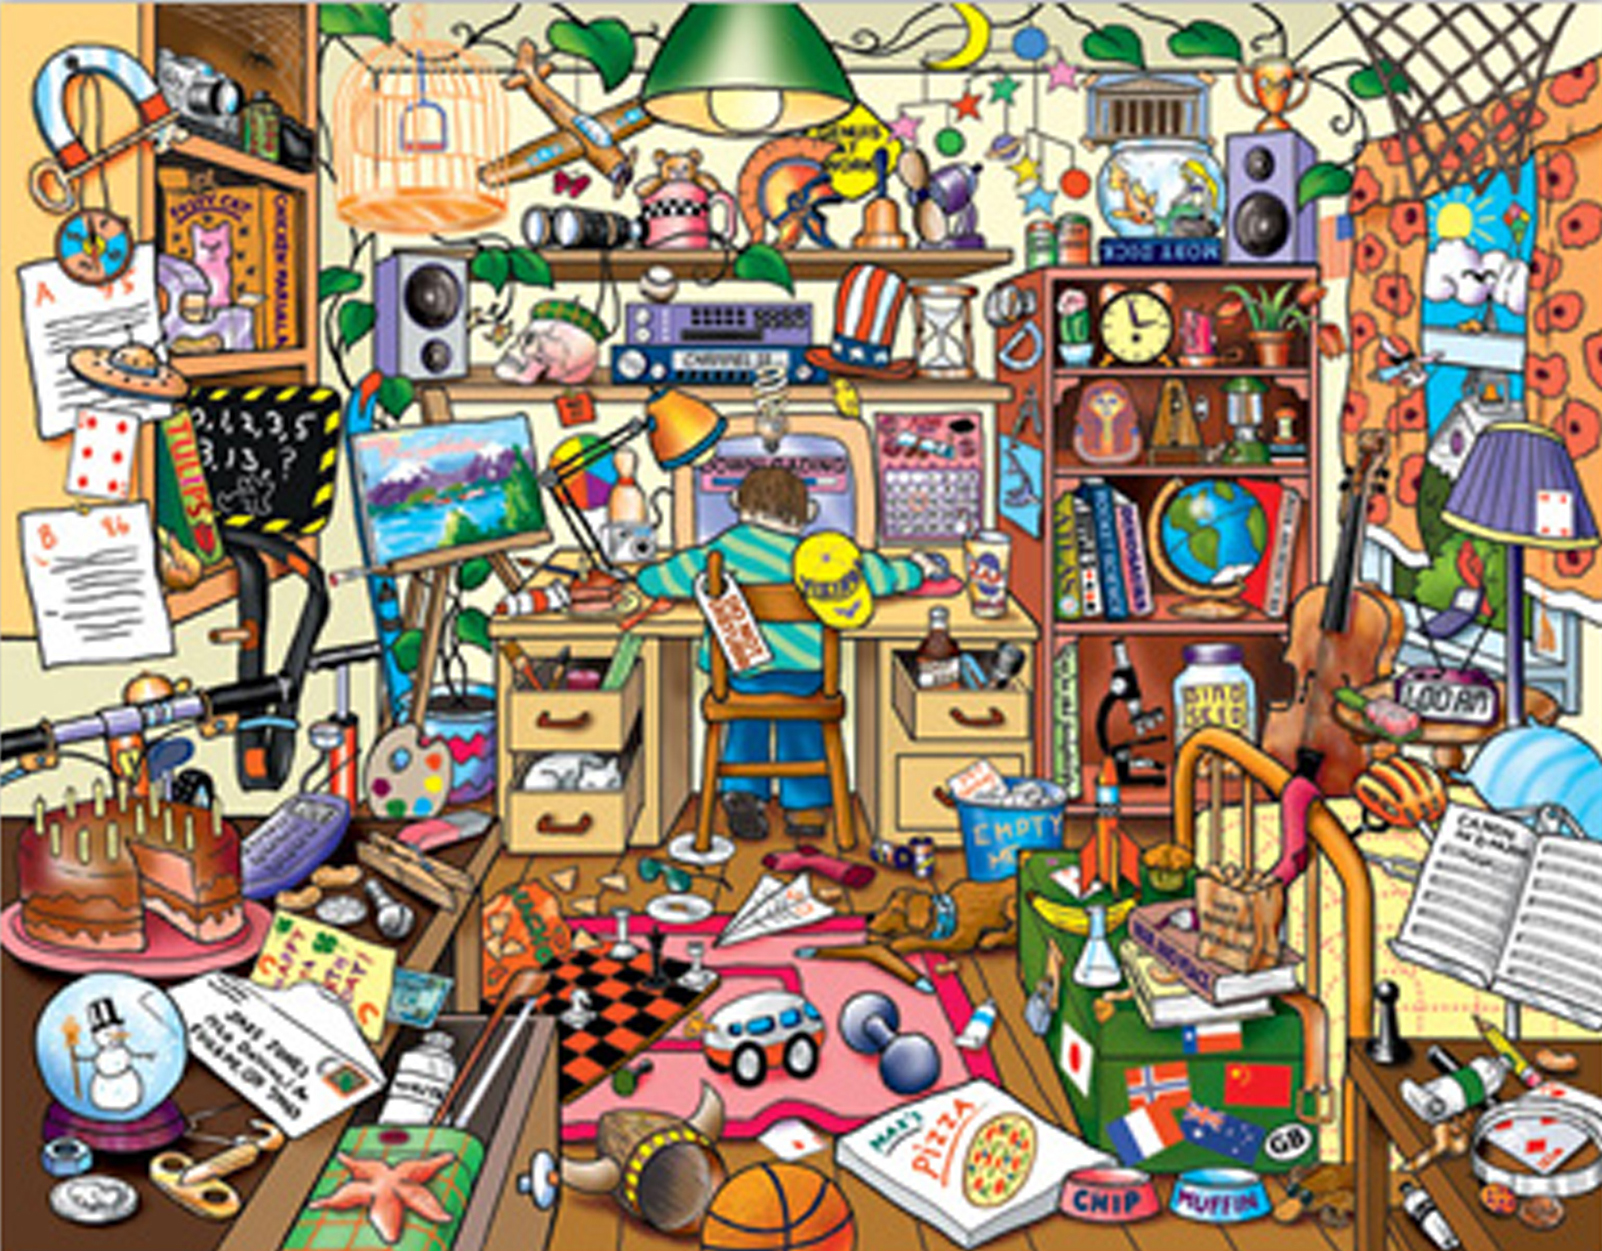 Free Kitchen Mess Cliparts, Download Free Clip Art, Free Clip Art on.